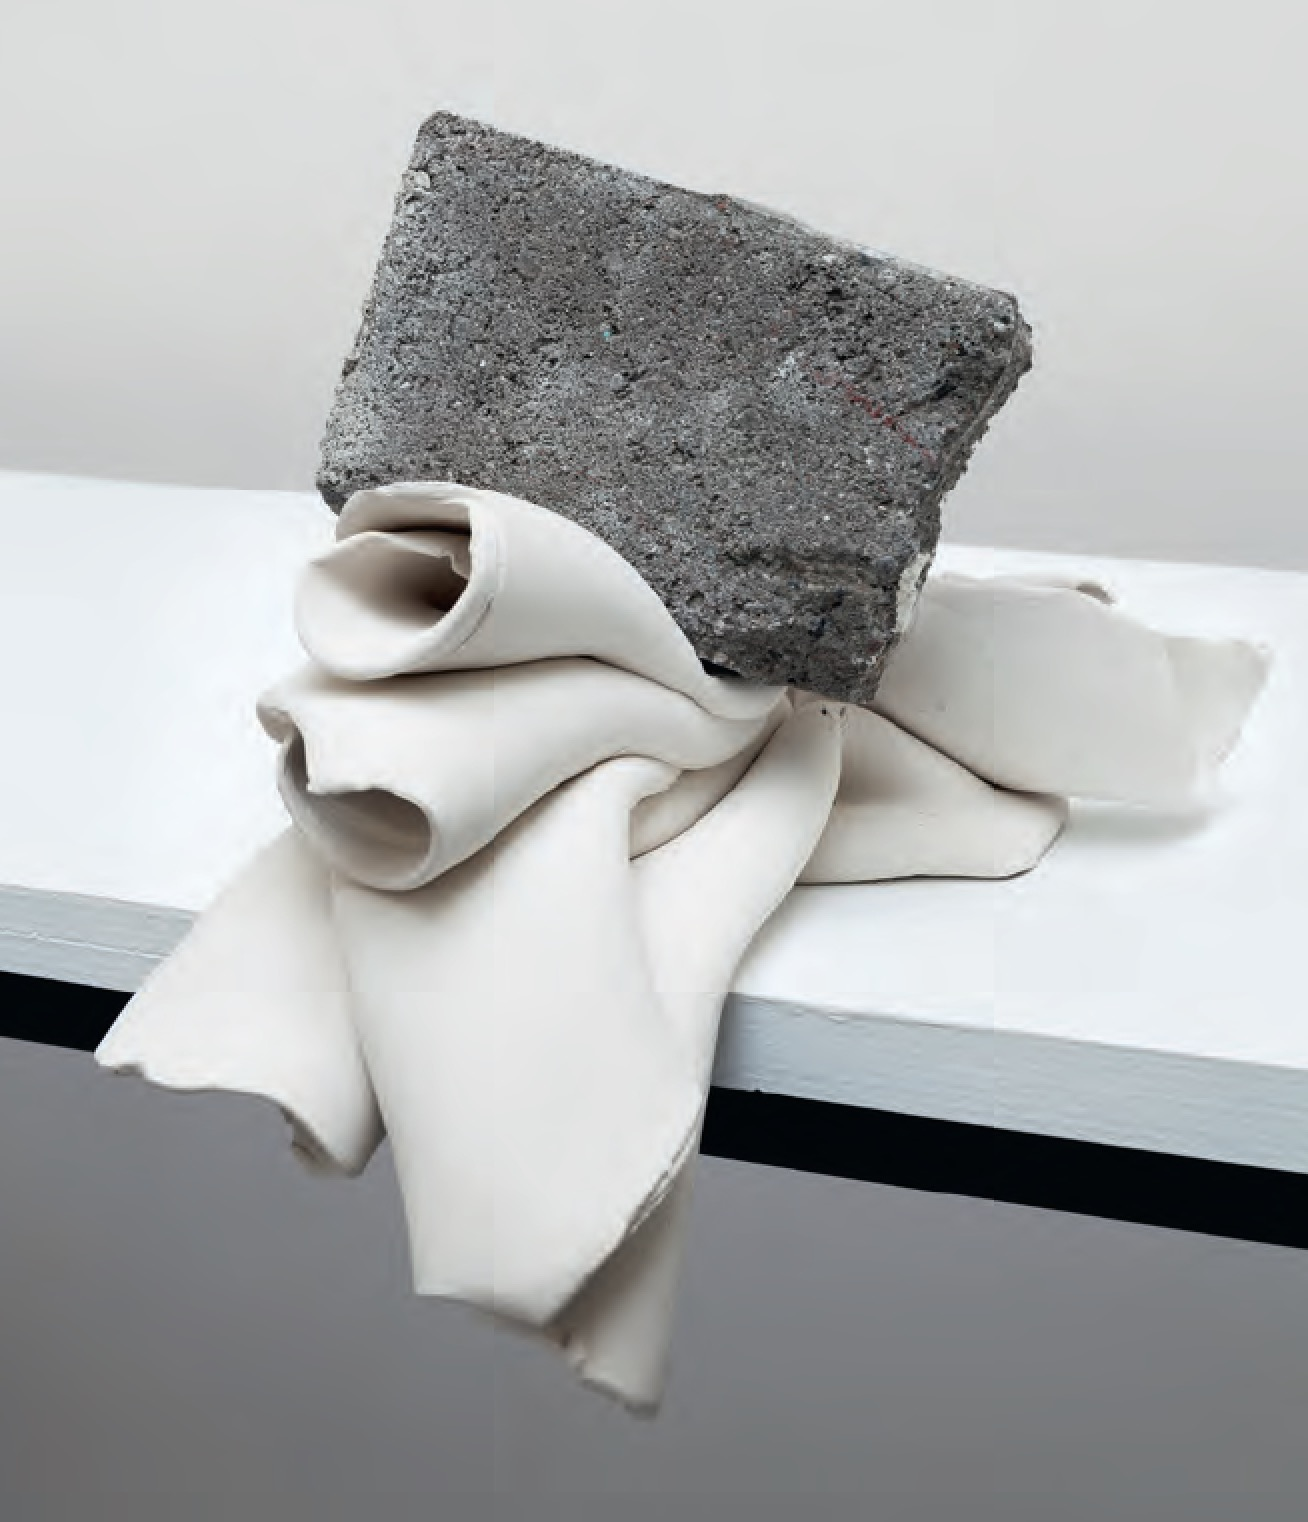 Untitled (with brick), 2014 Unglazed ceramic, concrete – Marco Chiandetti